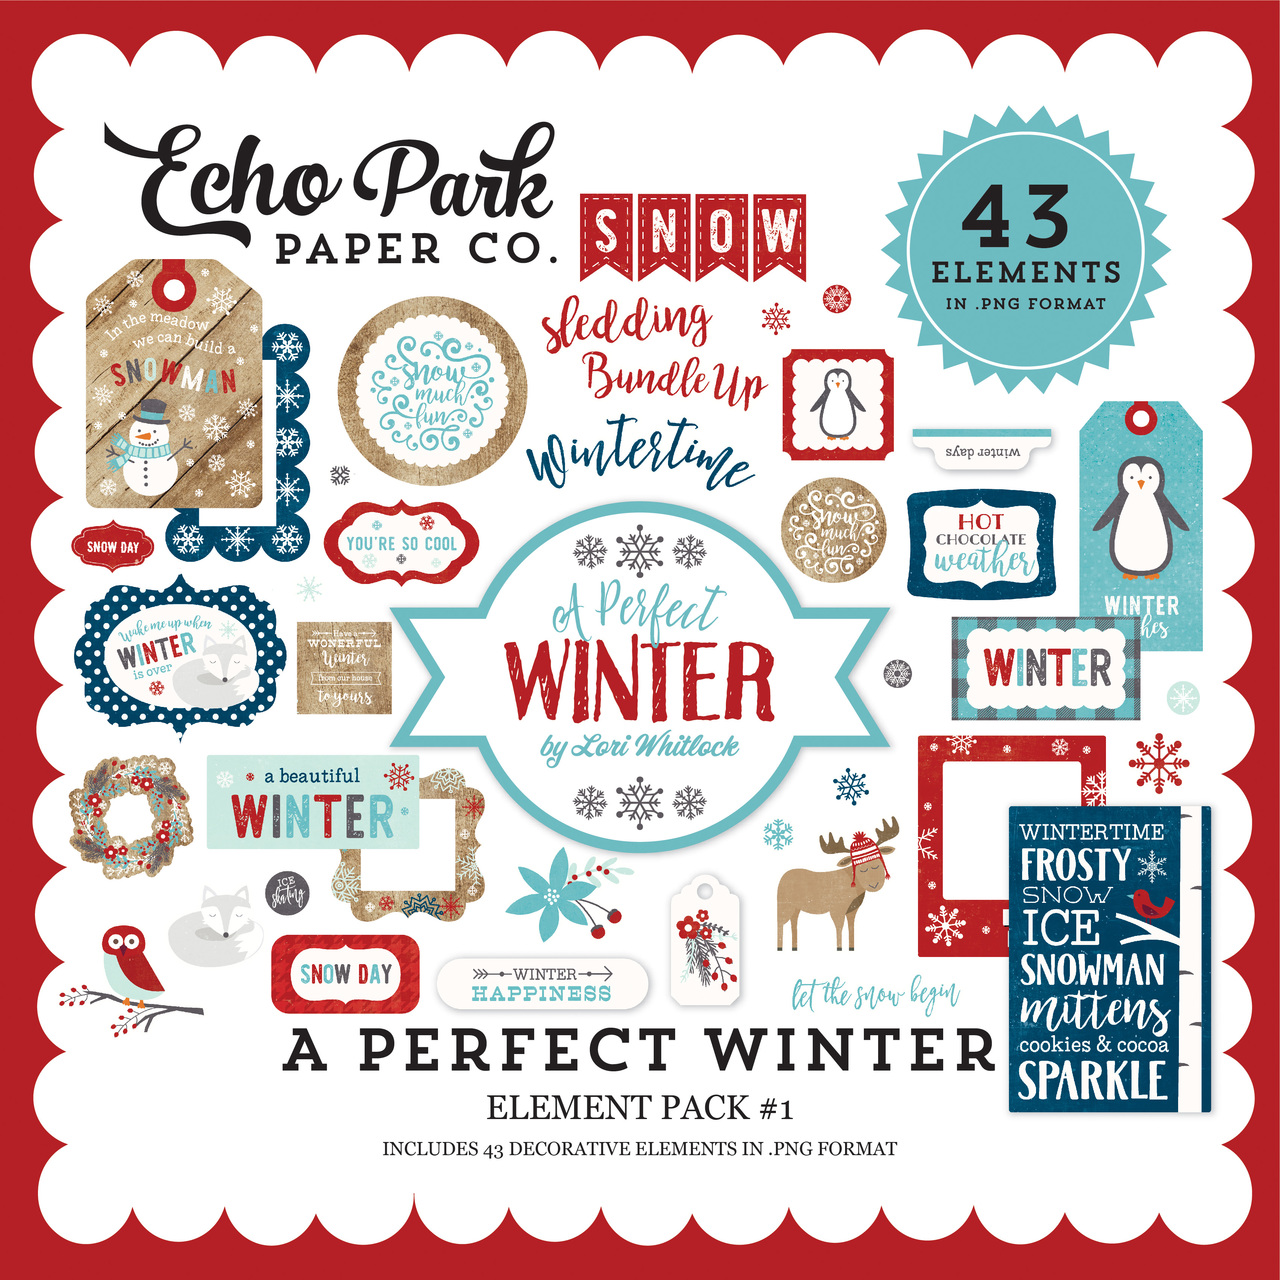 A Perfect Winter Element Pack #1